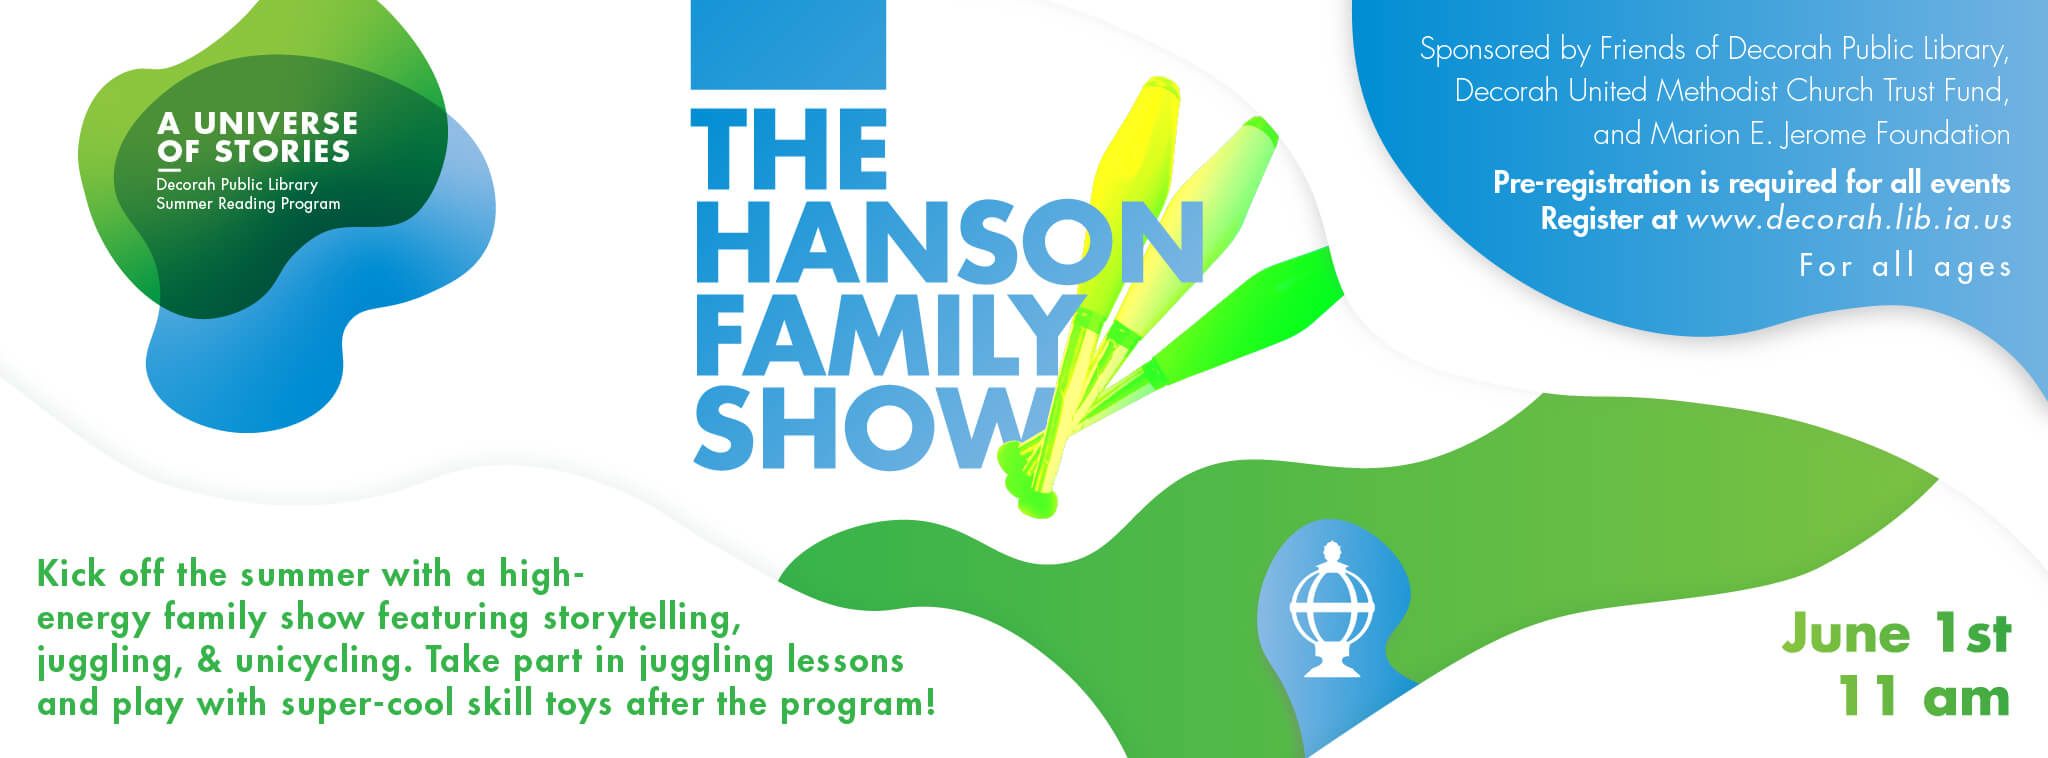 The Hanson Family Show